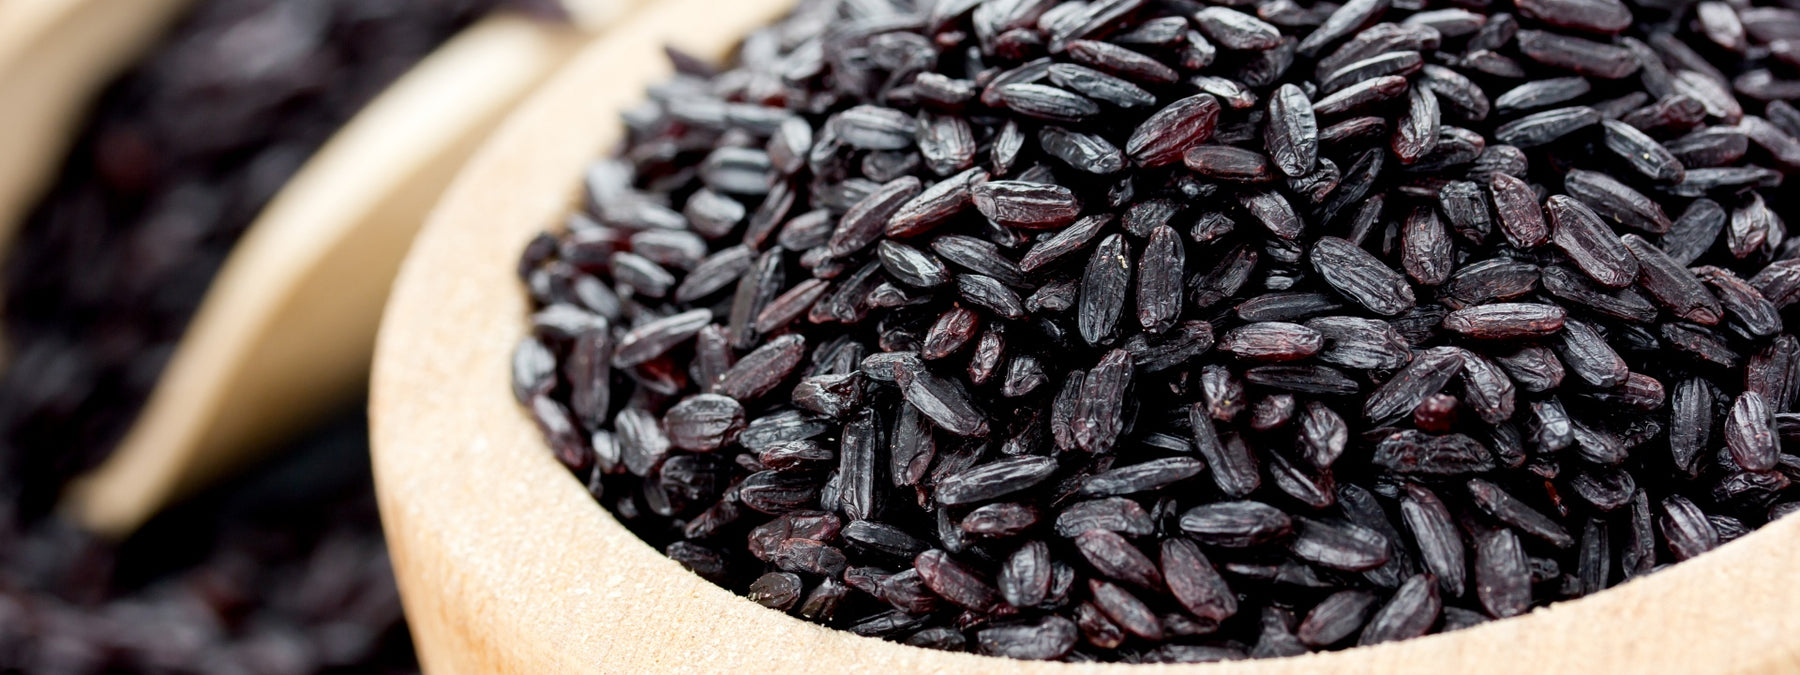 Black Rice: Should You Eat This Superfood?